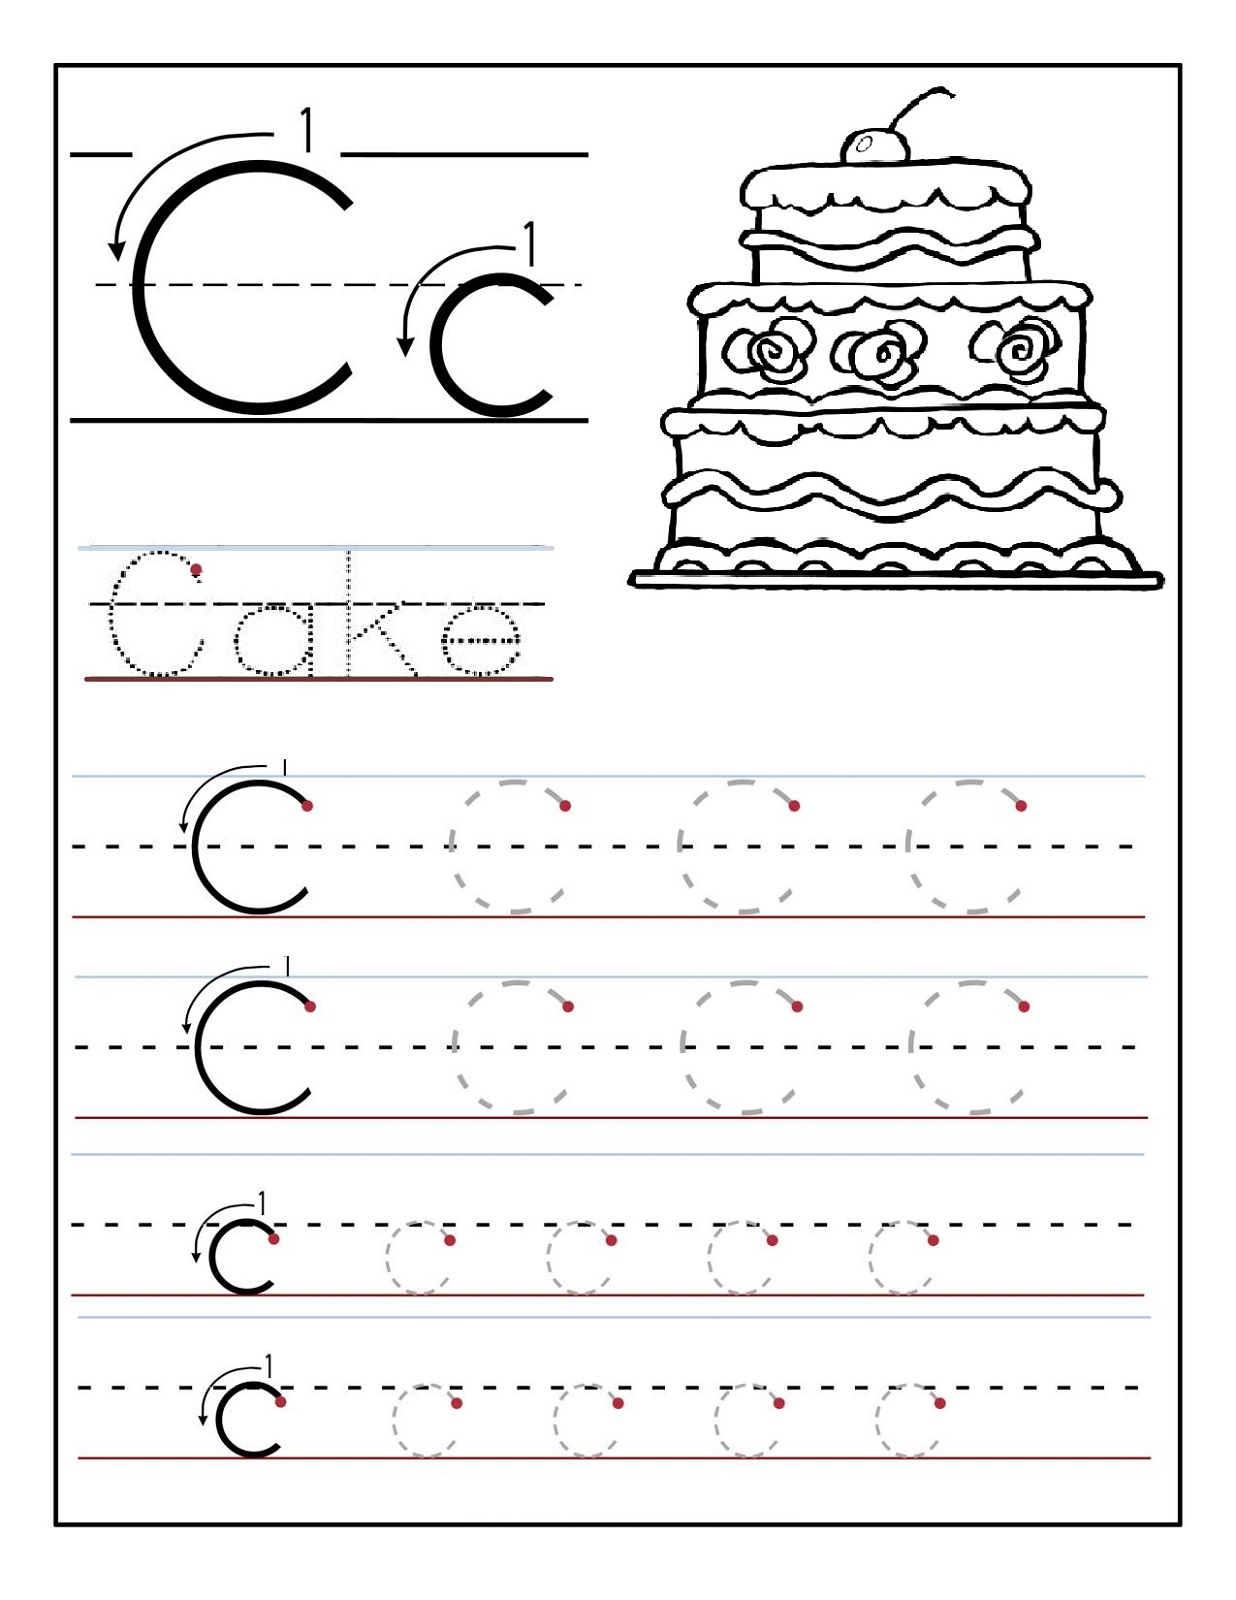 Printables Preschool Alphabet Worksheet preschool alphabet worksheets activity shelter cake